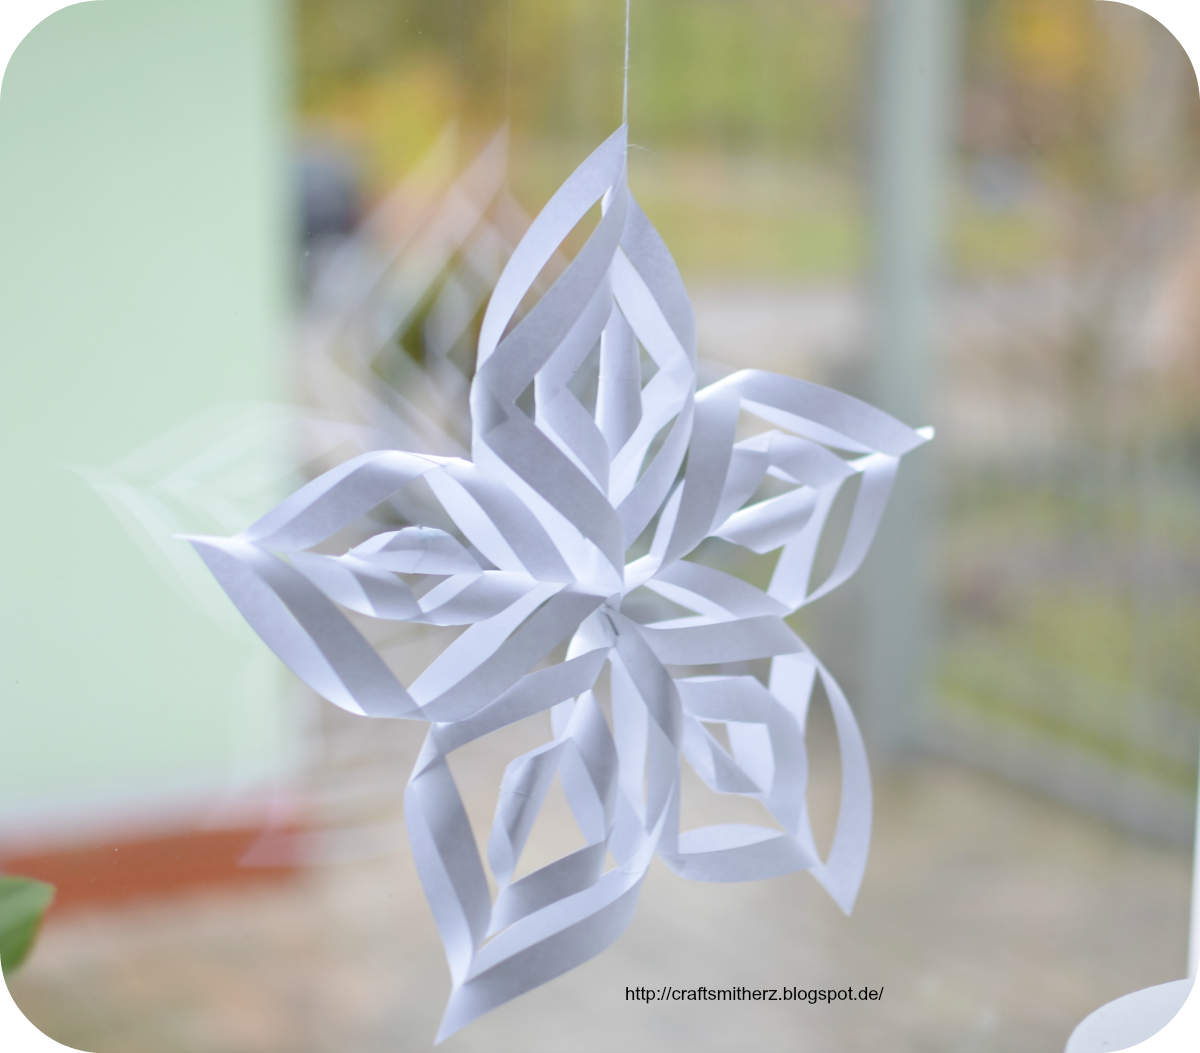 Snowflake ornaments crafts - Snowflake Ornaments Crafts 1